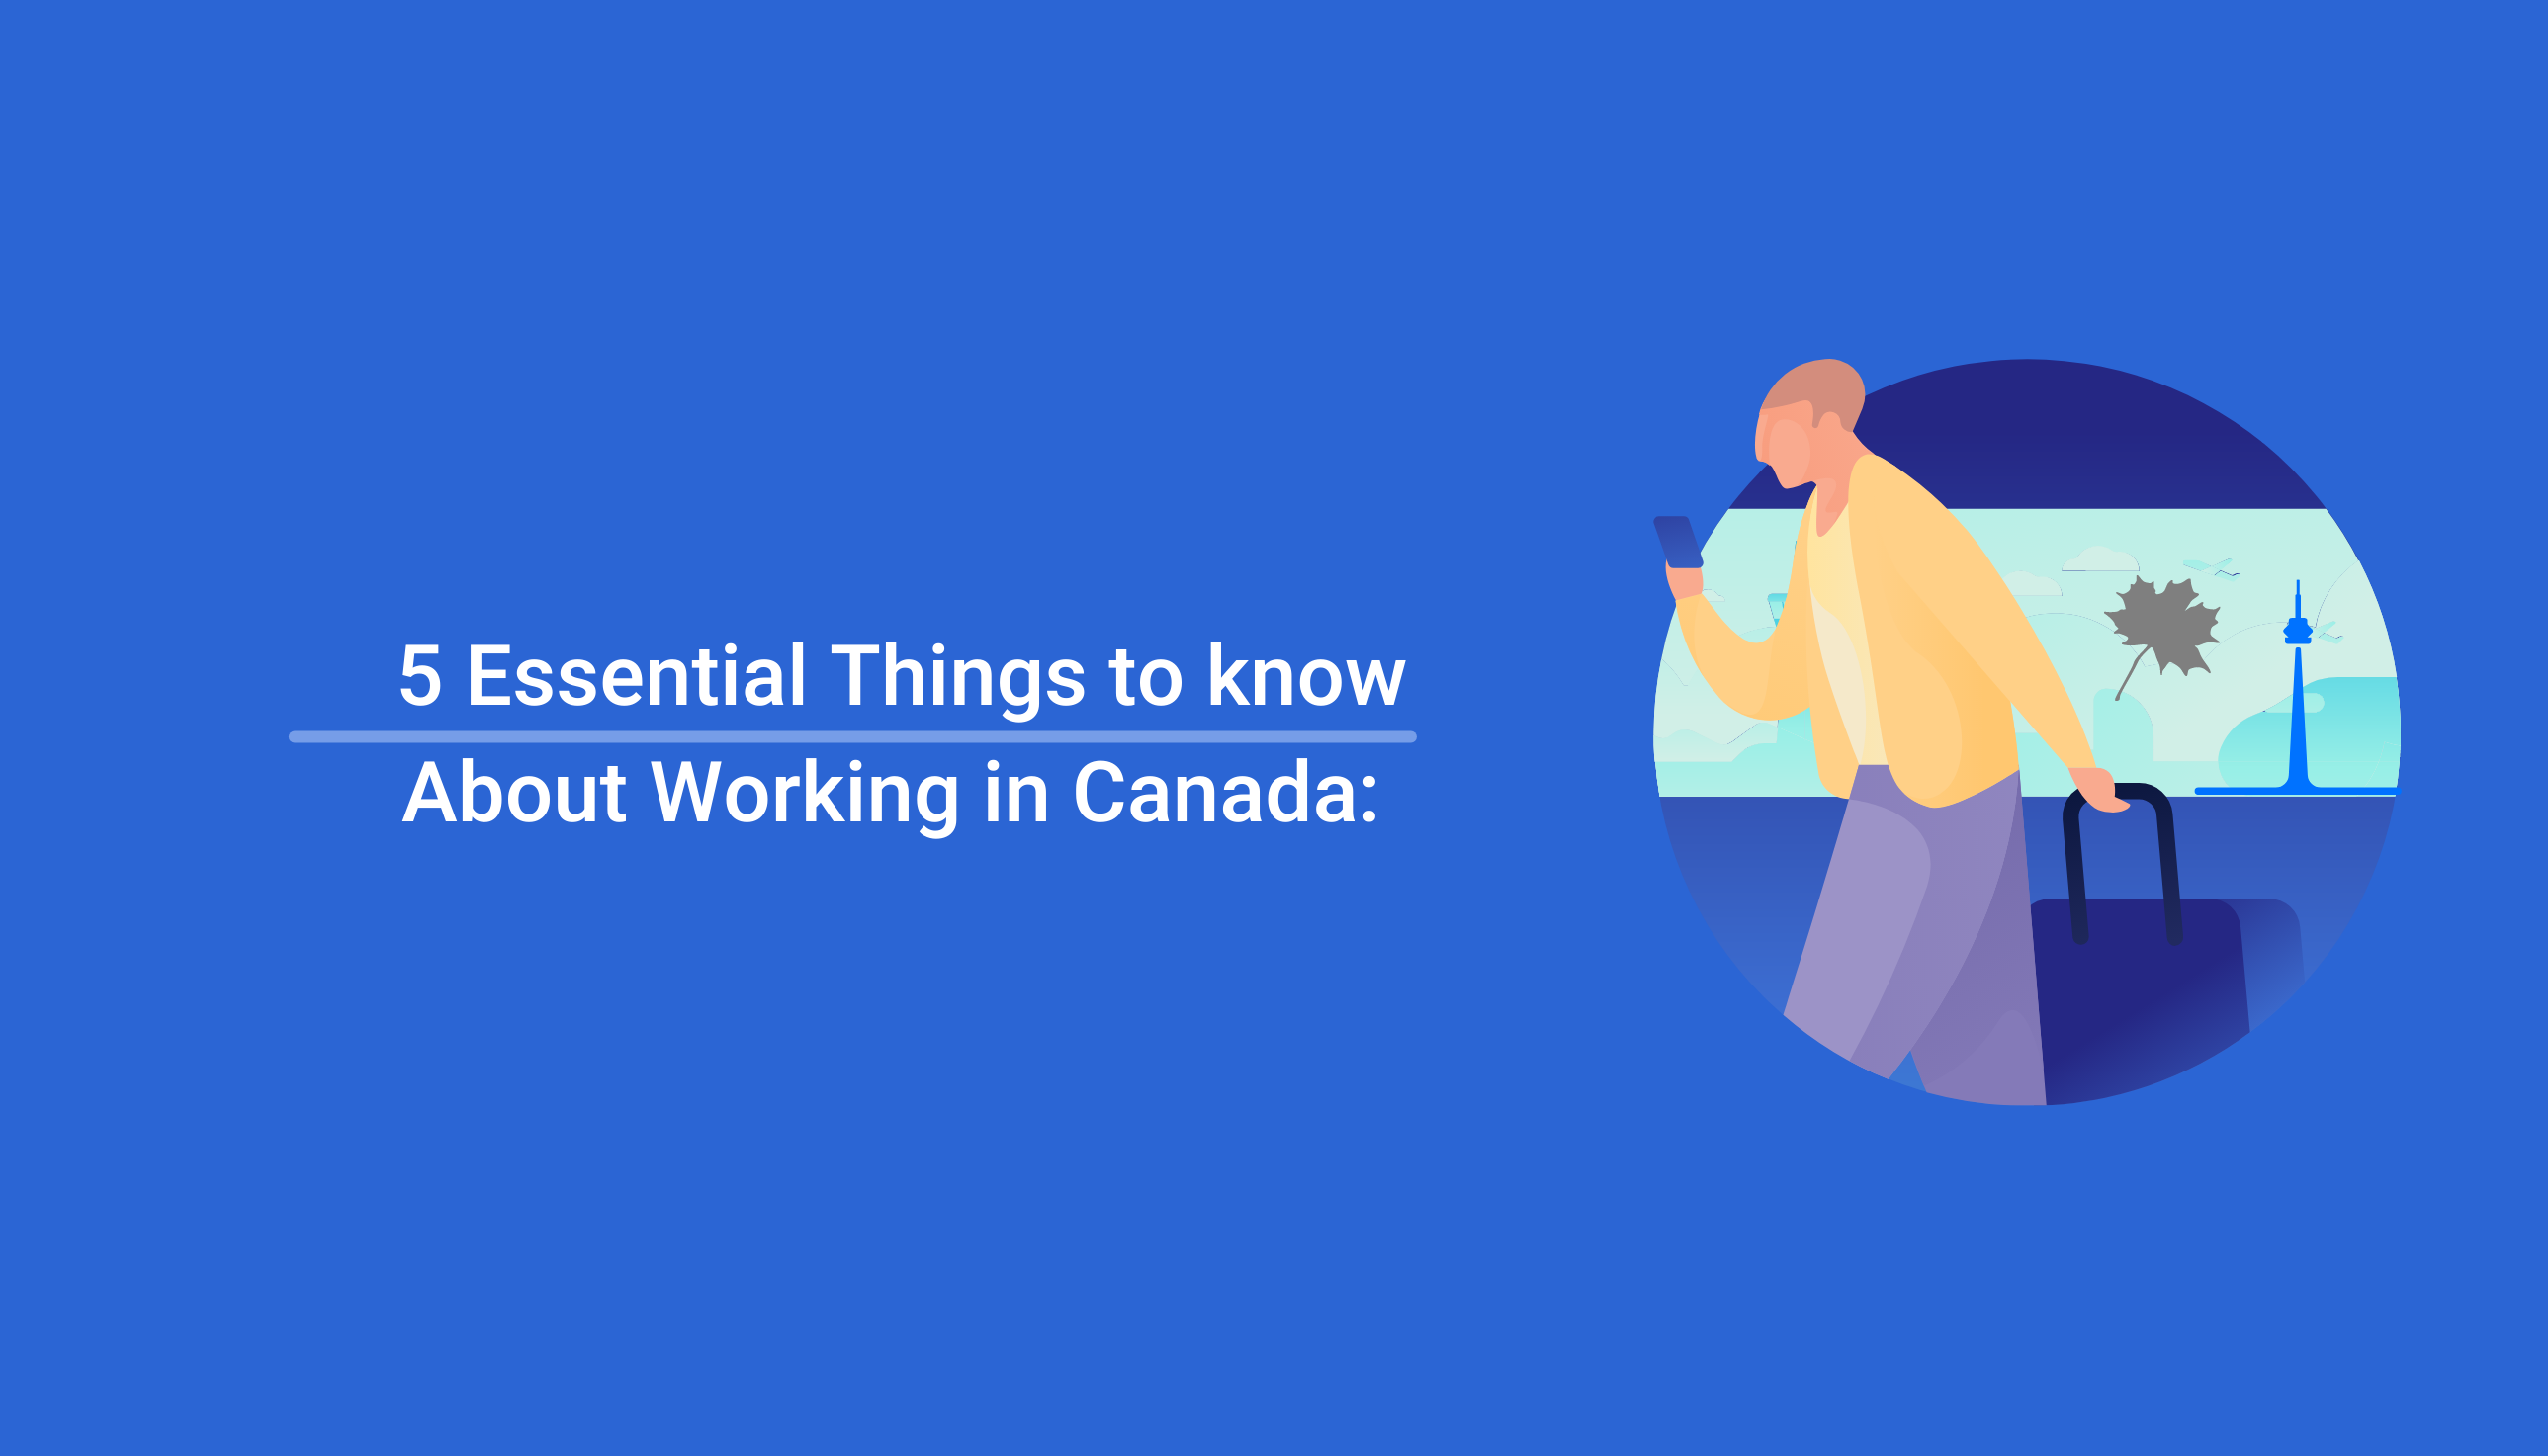 5 Essential Things to Know About Working in Canada